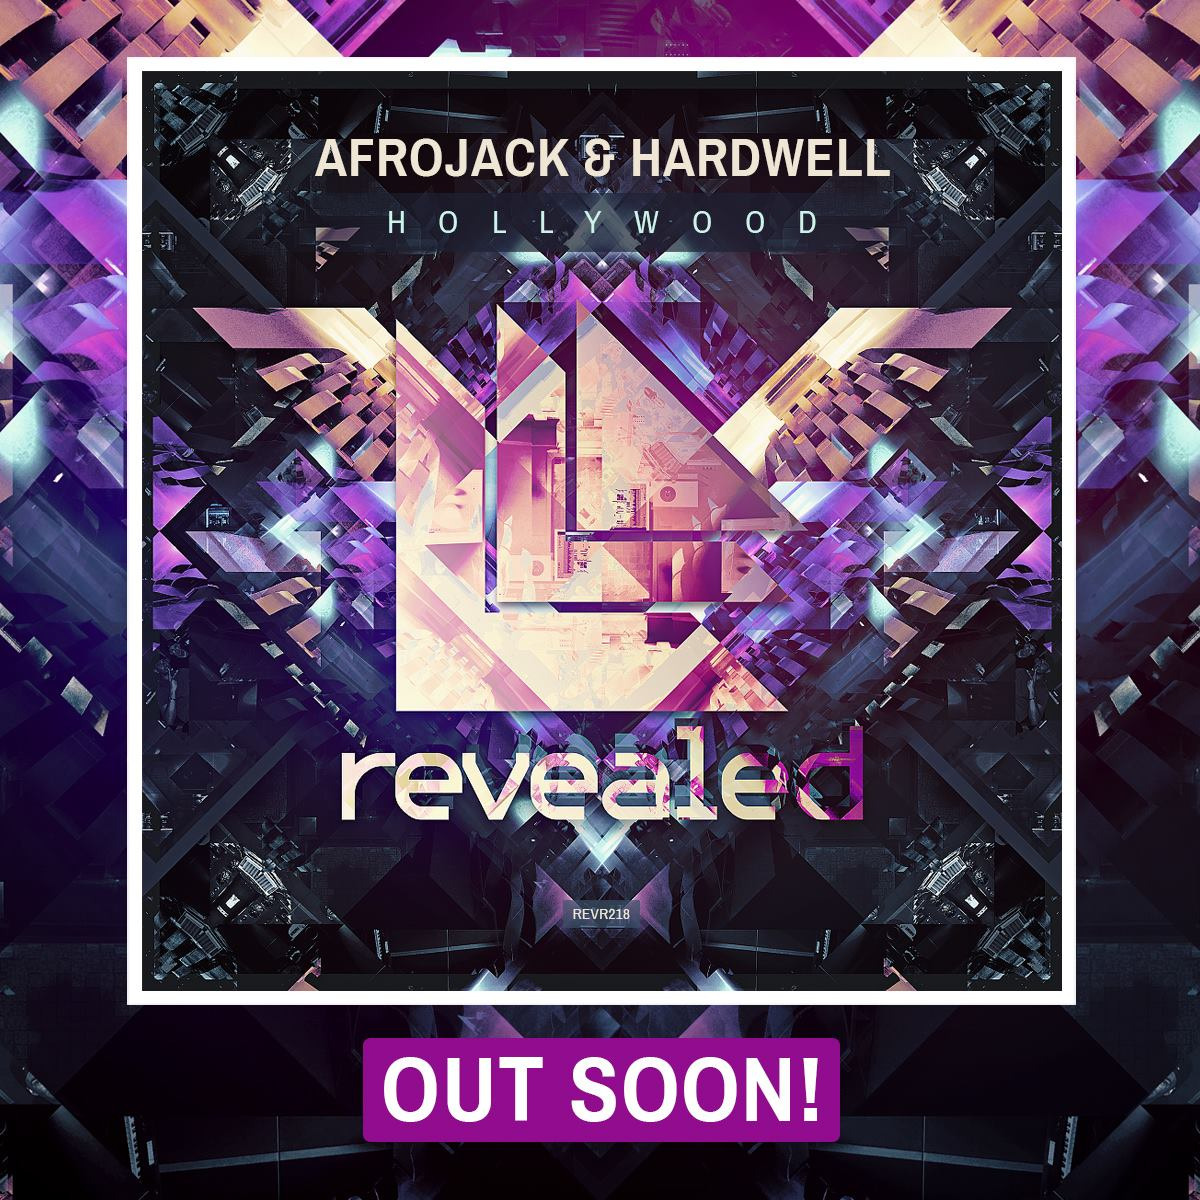 afrojack-hardwell-hollywood